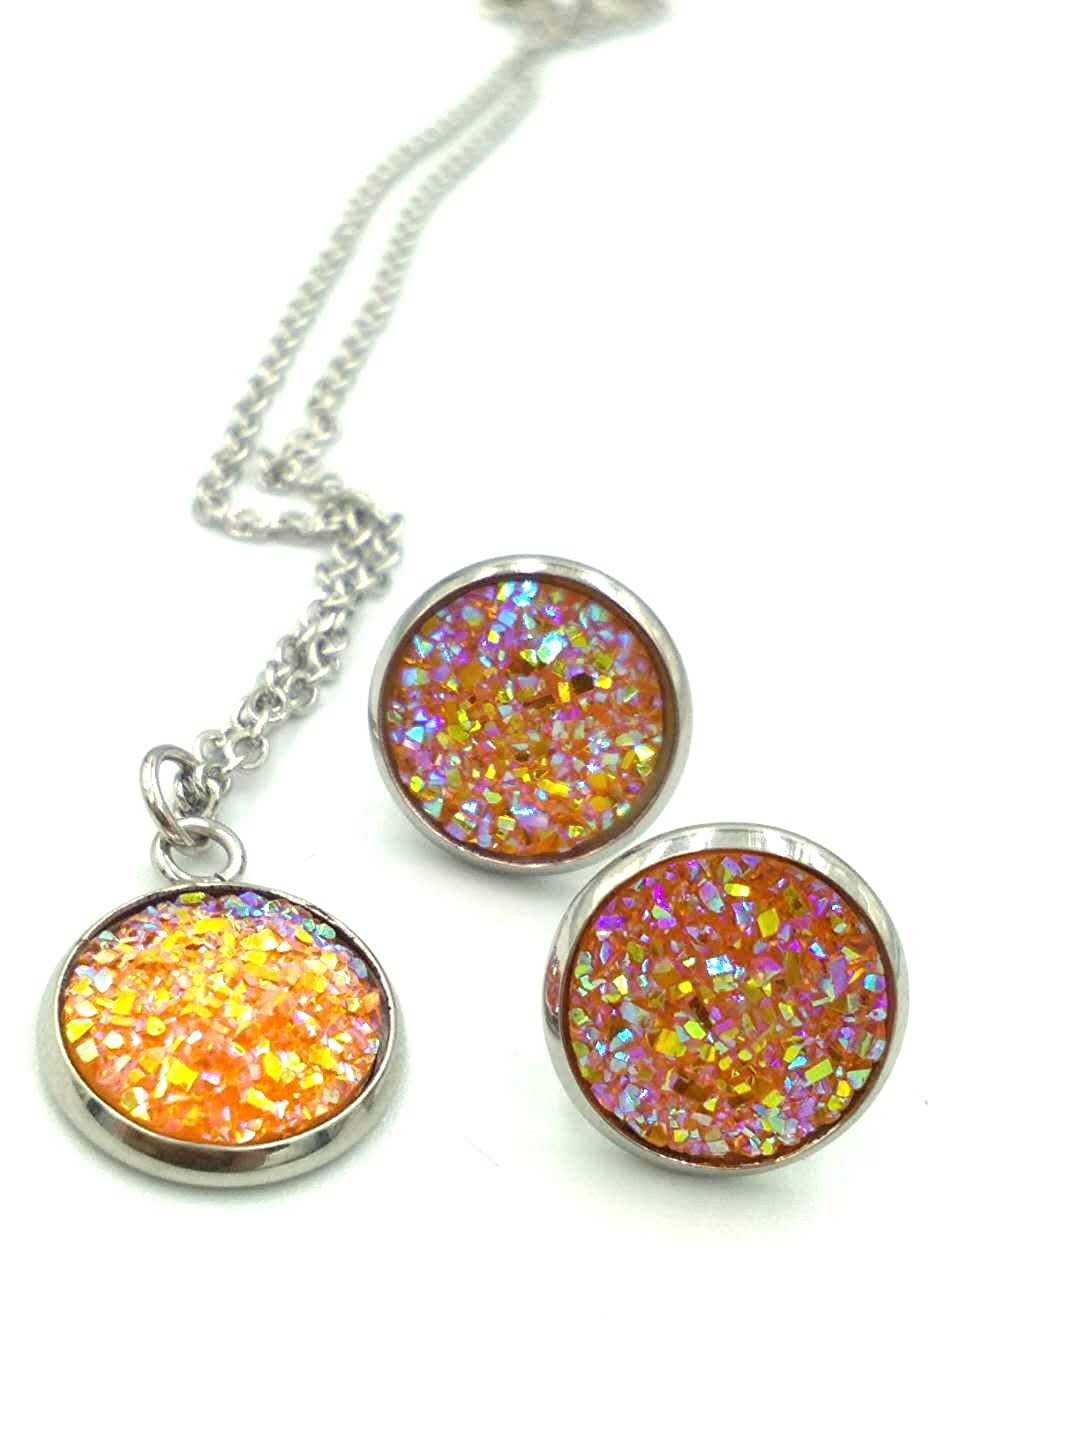 luo 12set/Pack 12colors Jewelry Sets Fashion druzy Necklace Earrings Wedding Party Accessories Women luo ri xian